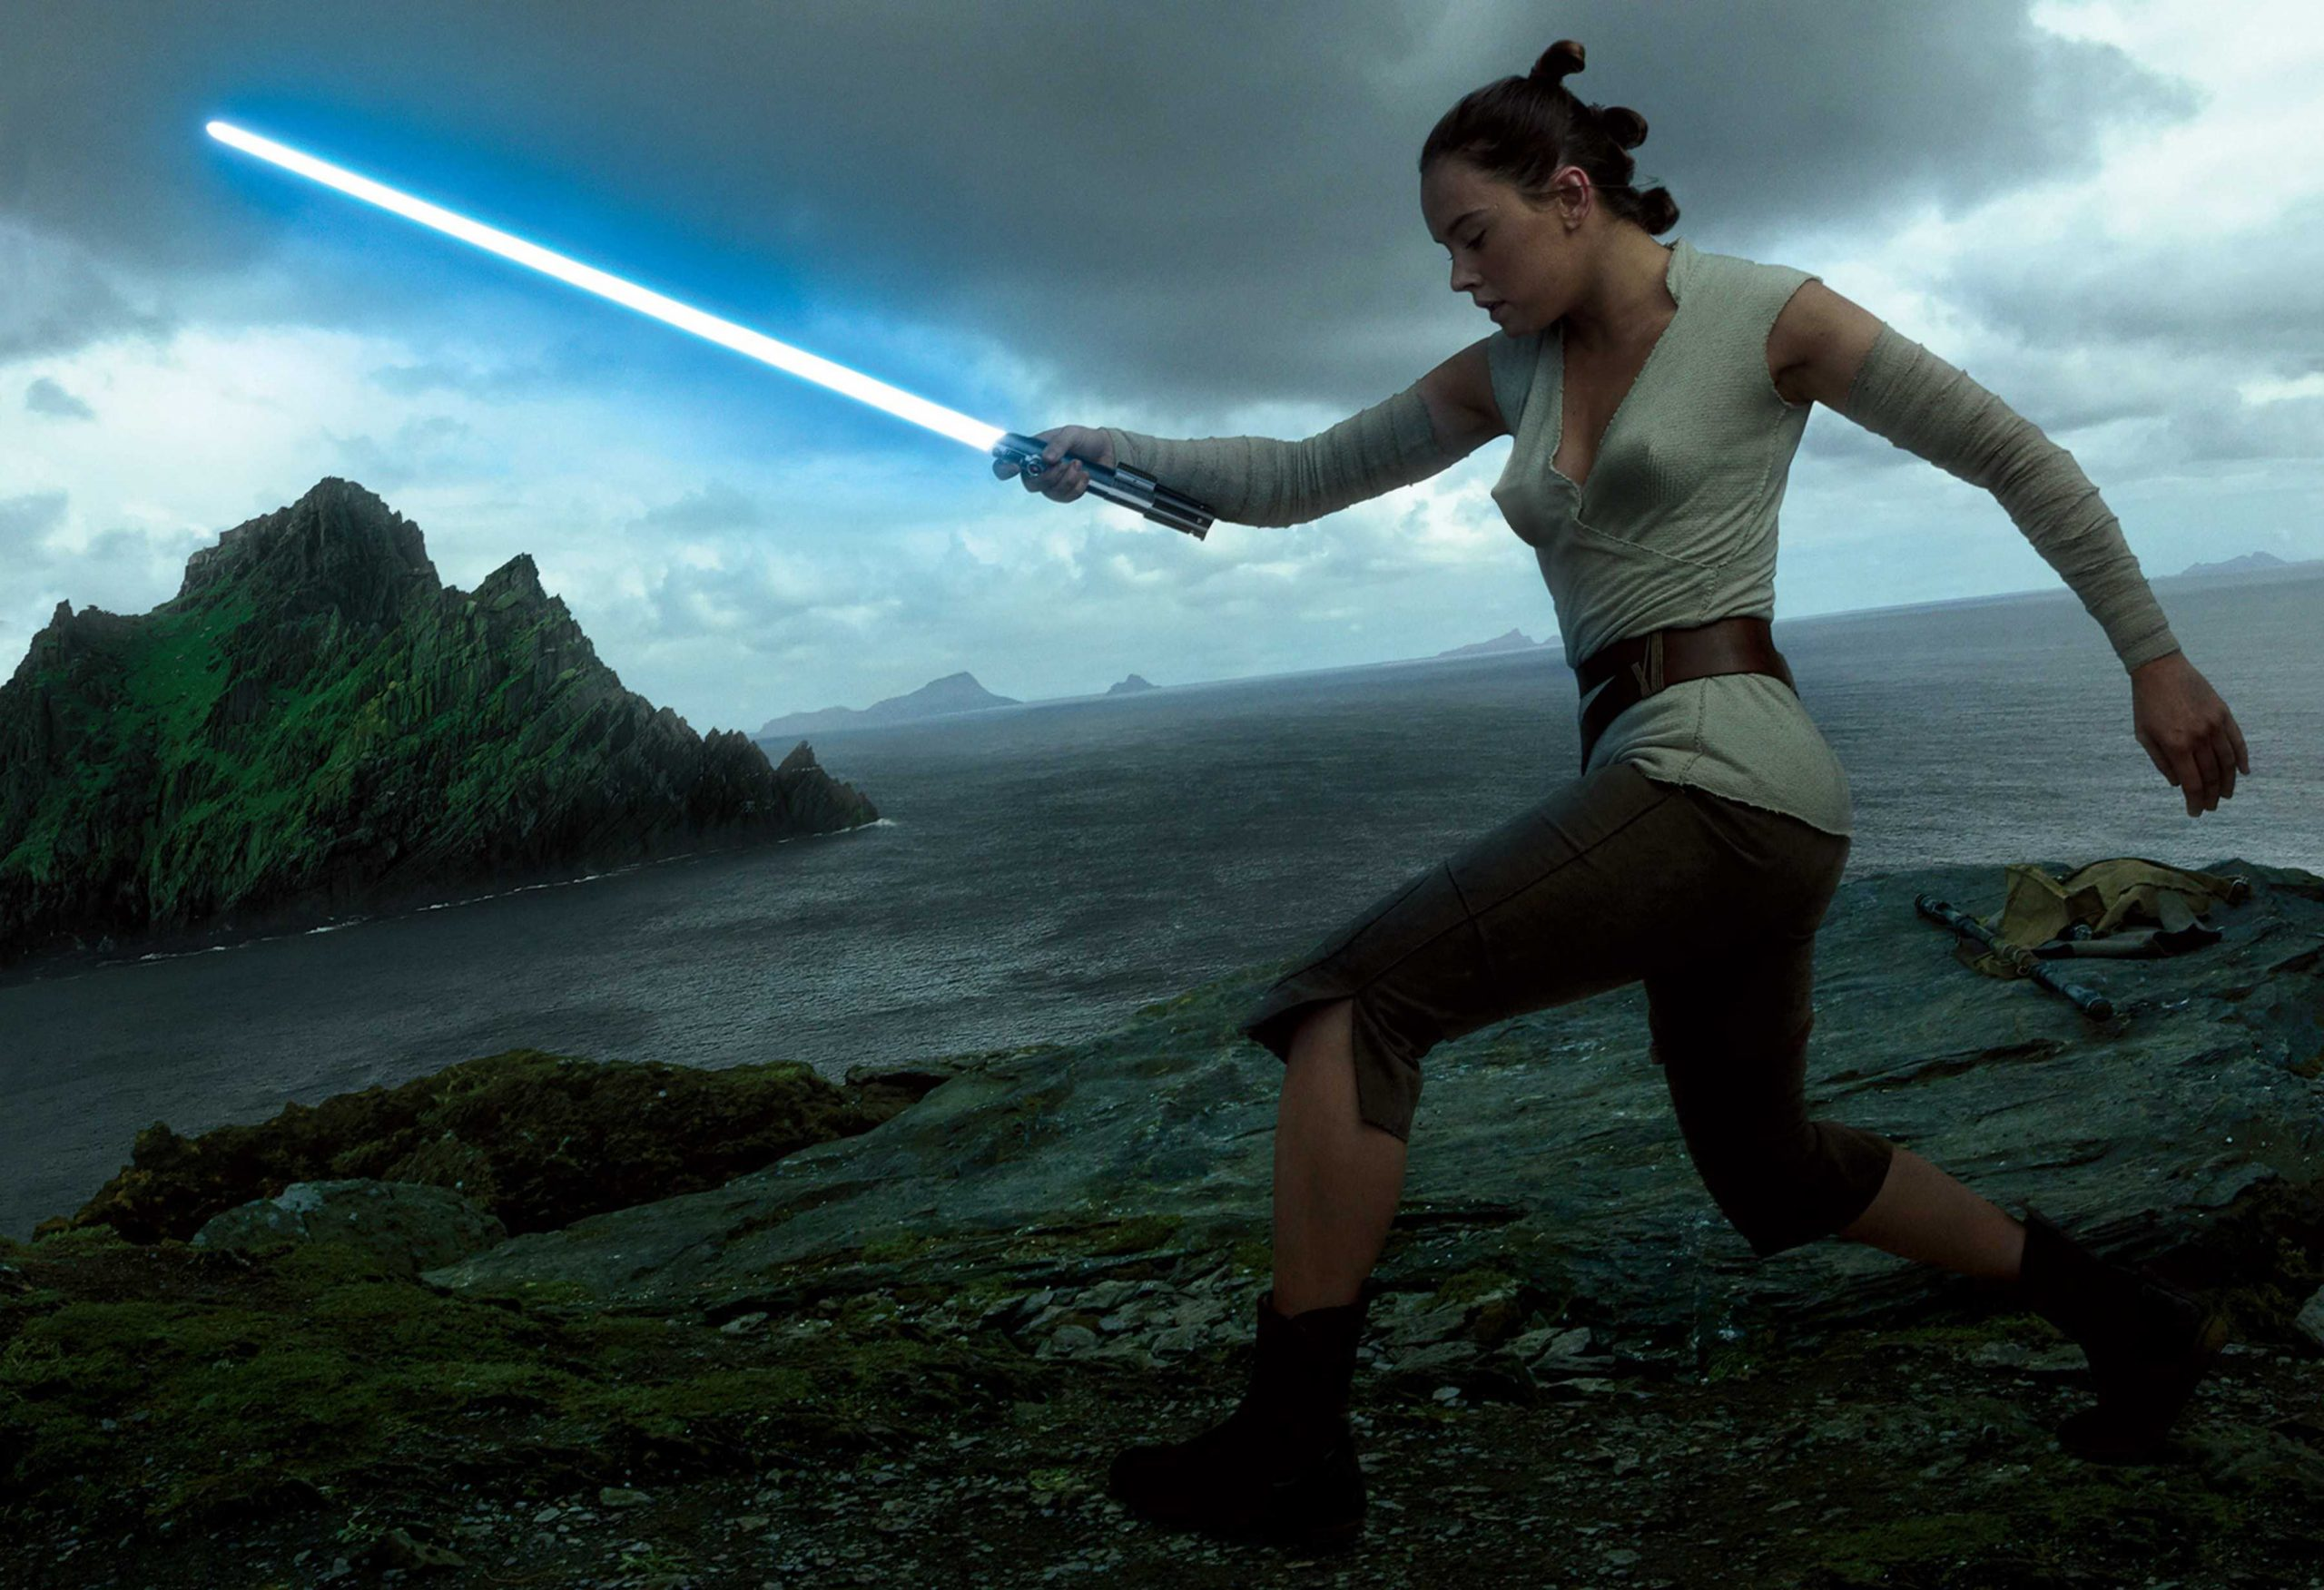 61 Rey Sexy Pictures Which Will Make You Succumb To Her